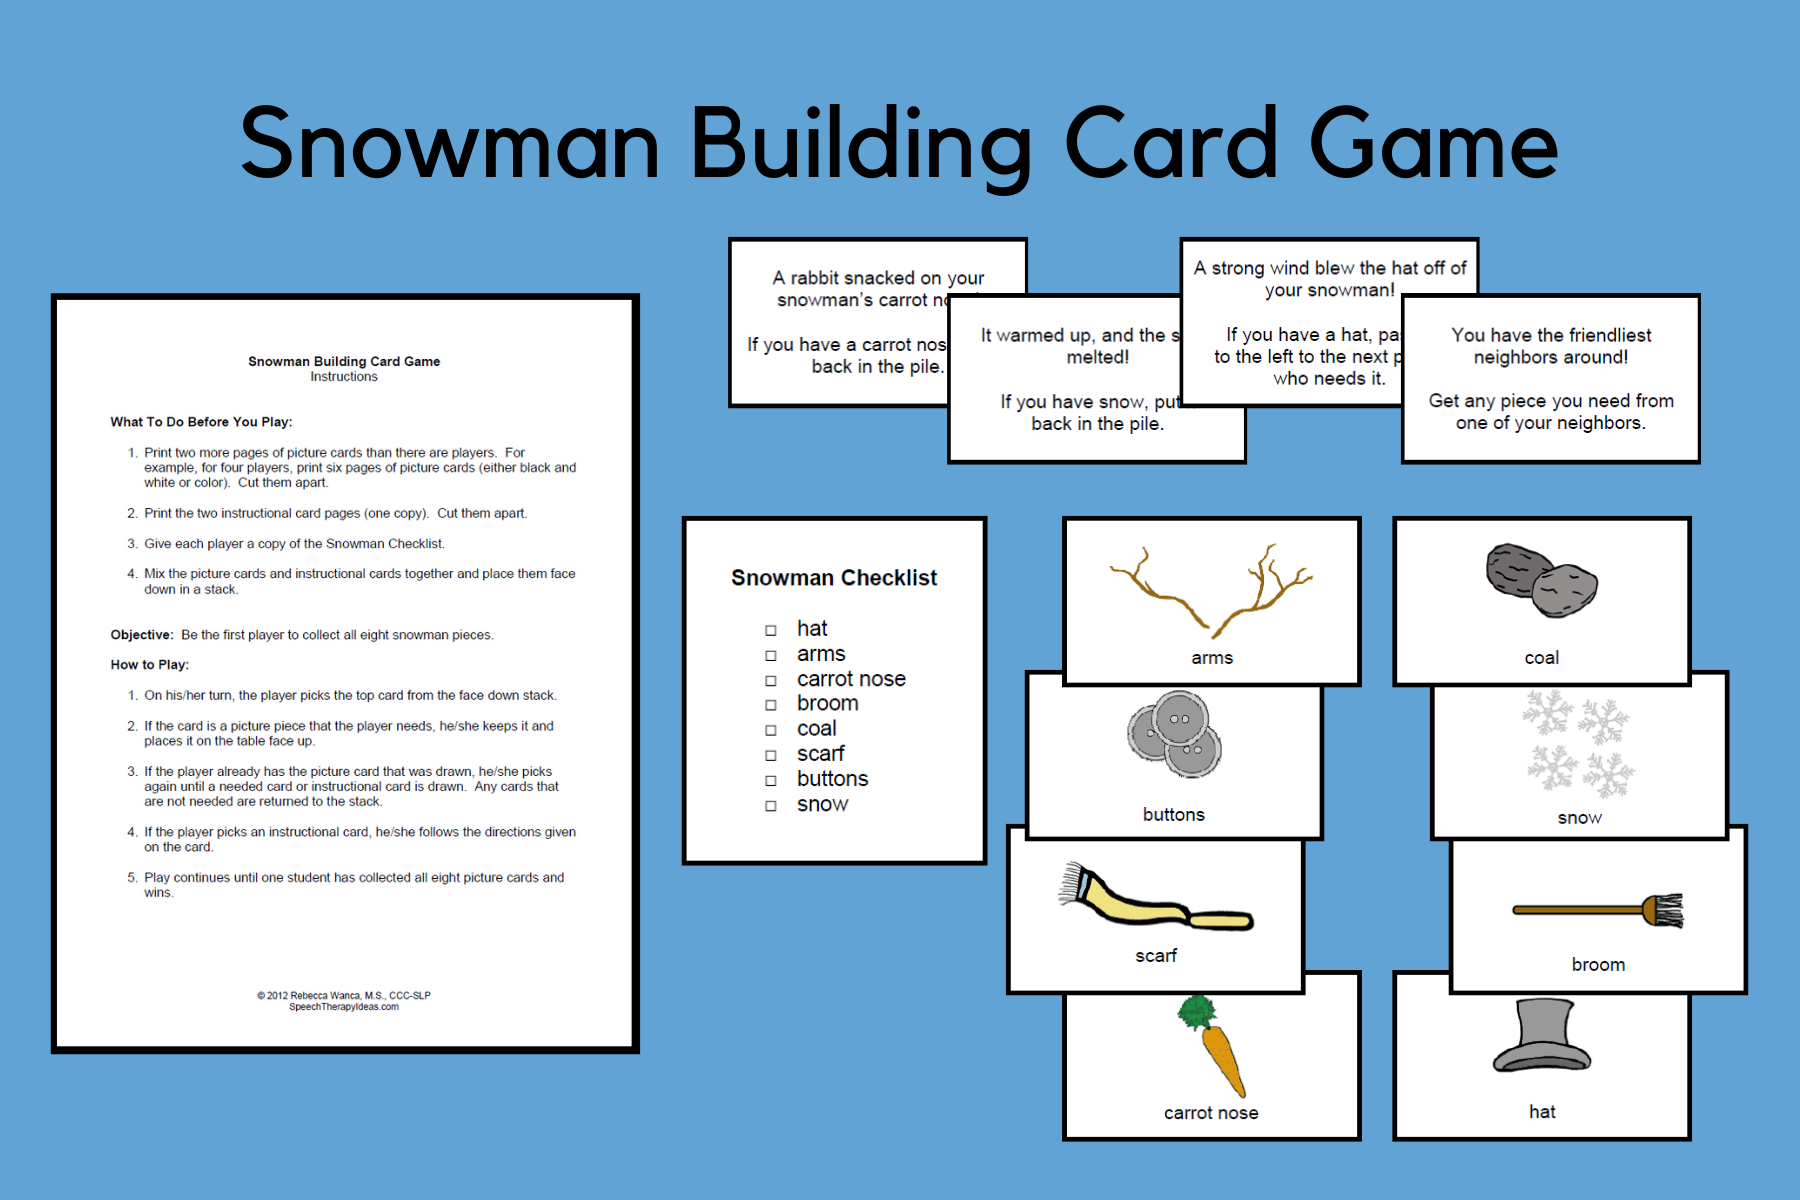 Snowman Building Card Game